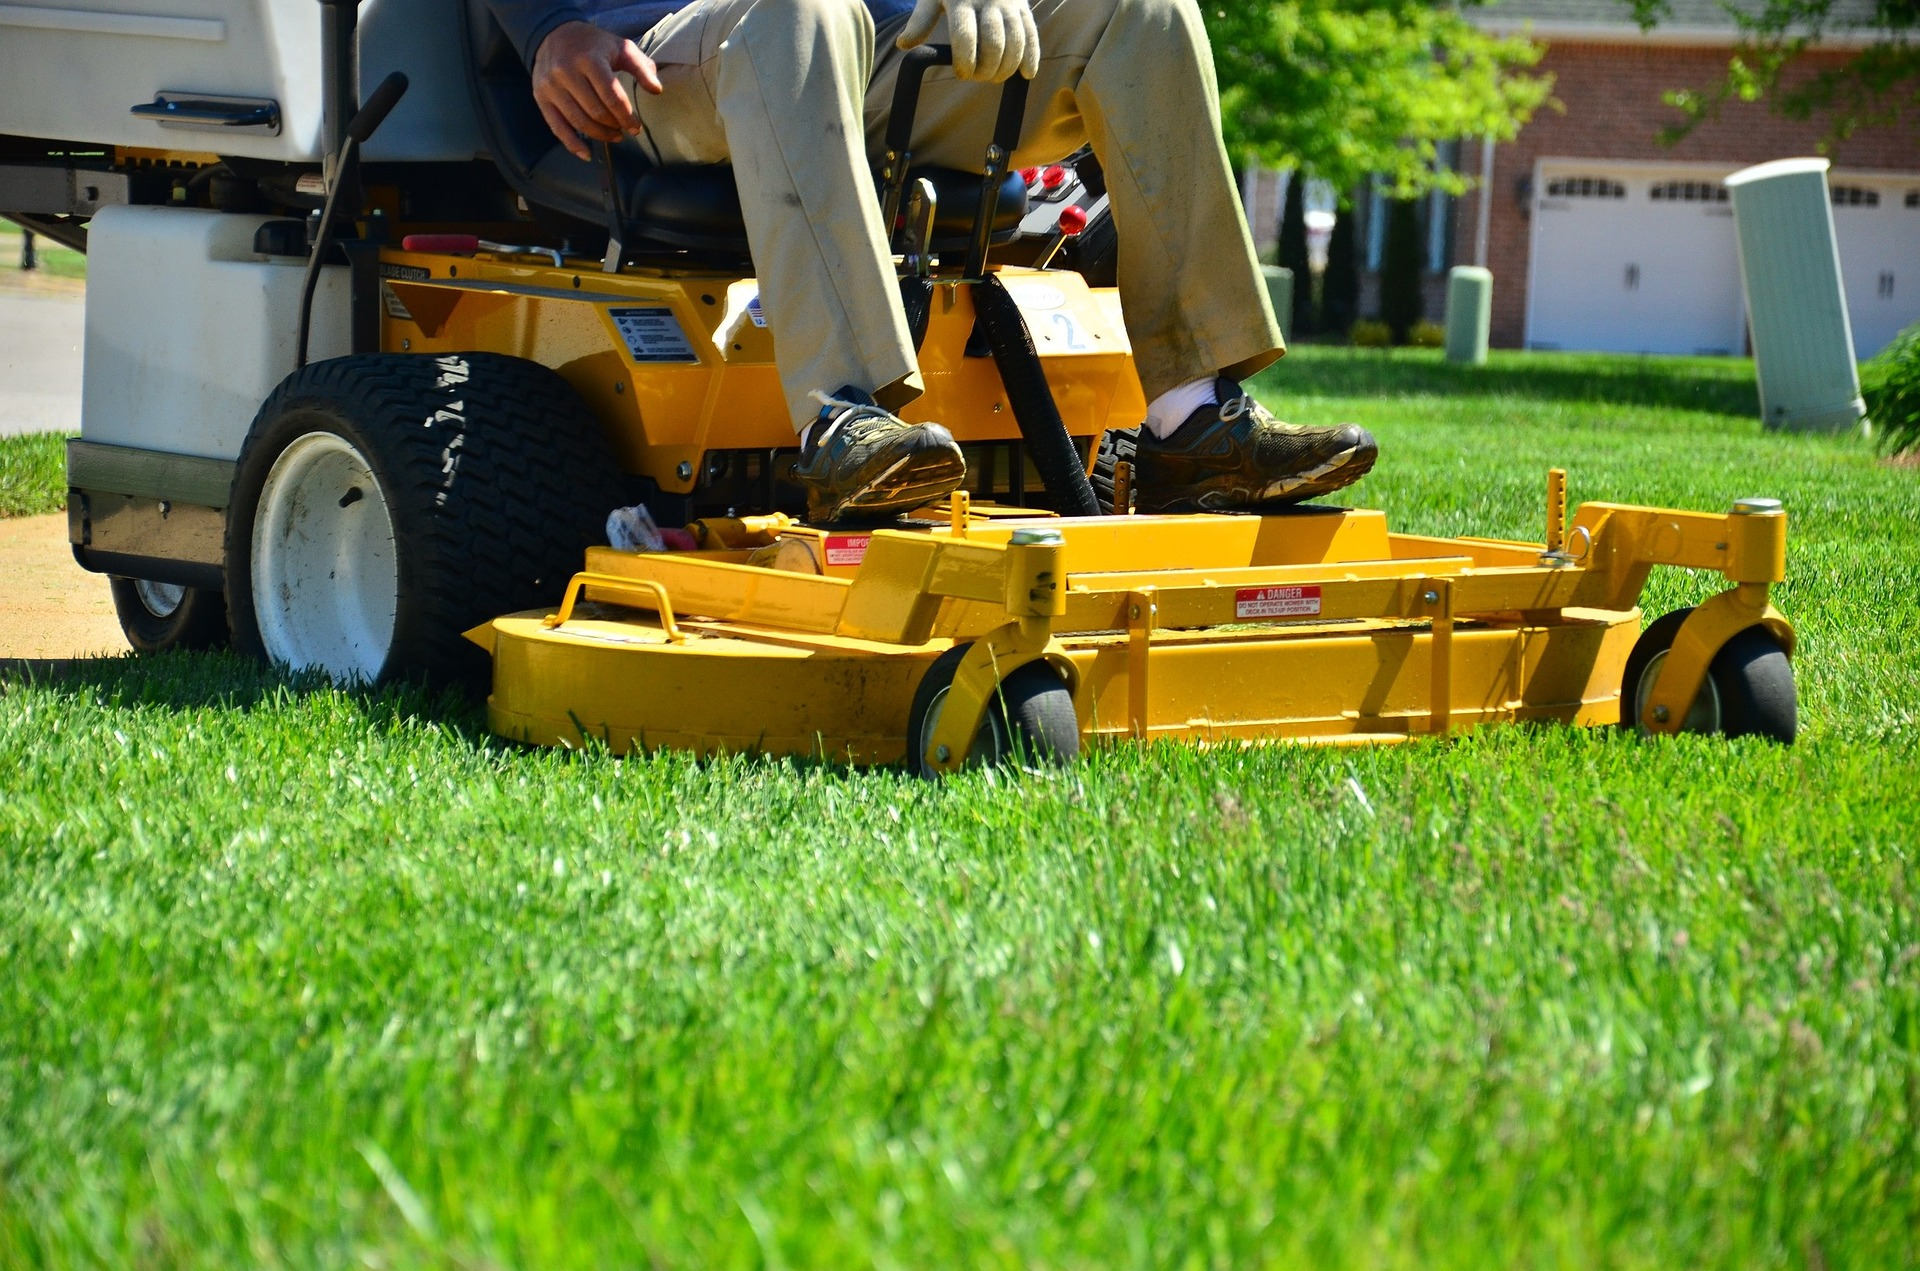 Lawn Mowing Service Lincoln Ne - Lincoln Tree and Garden